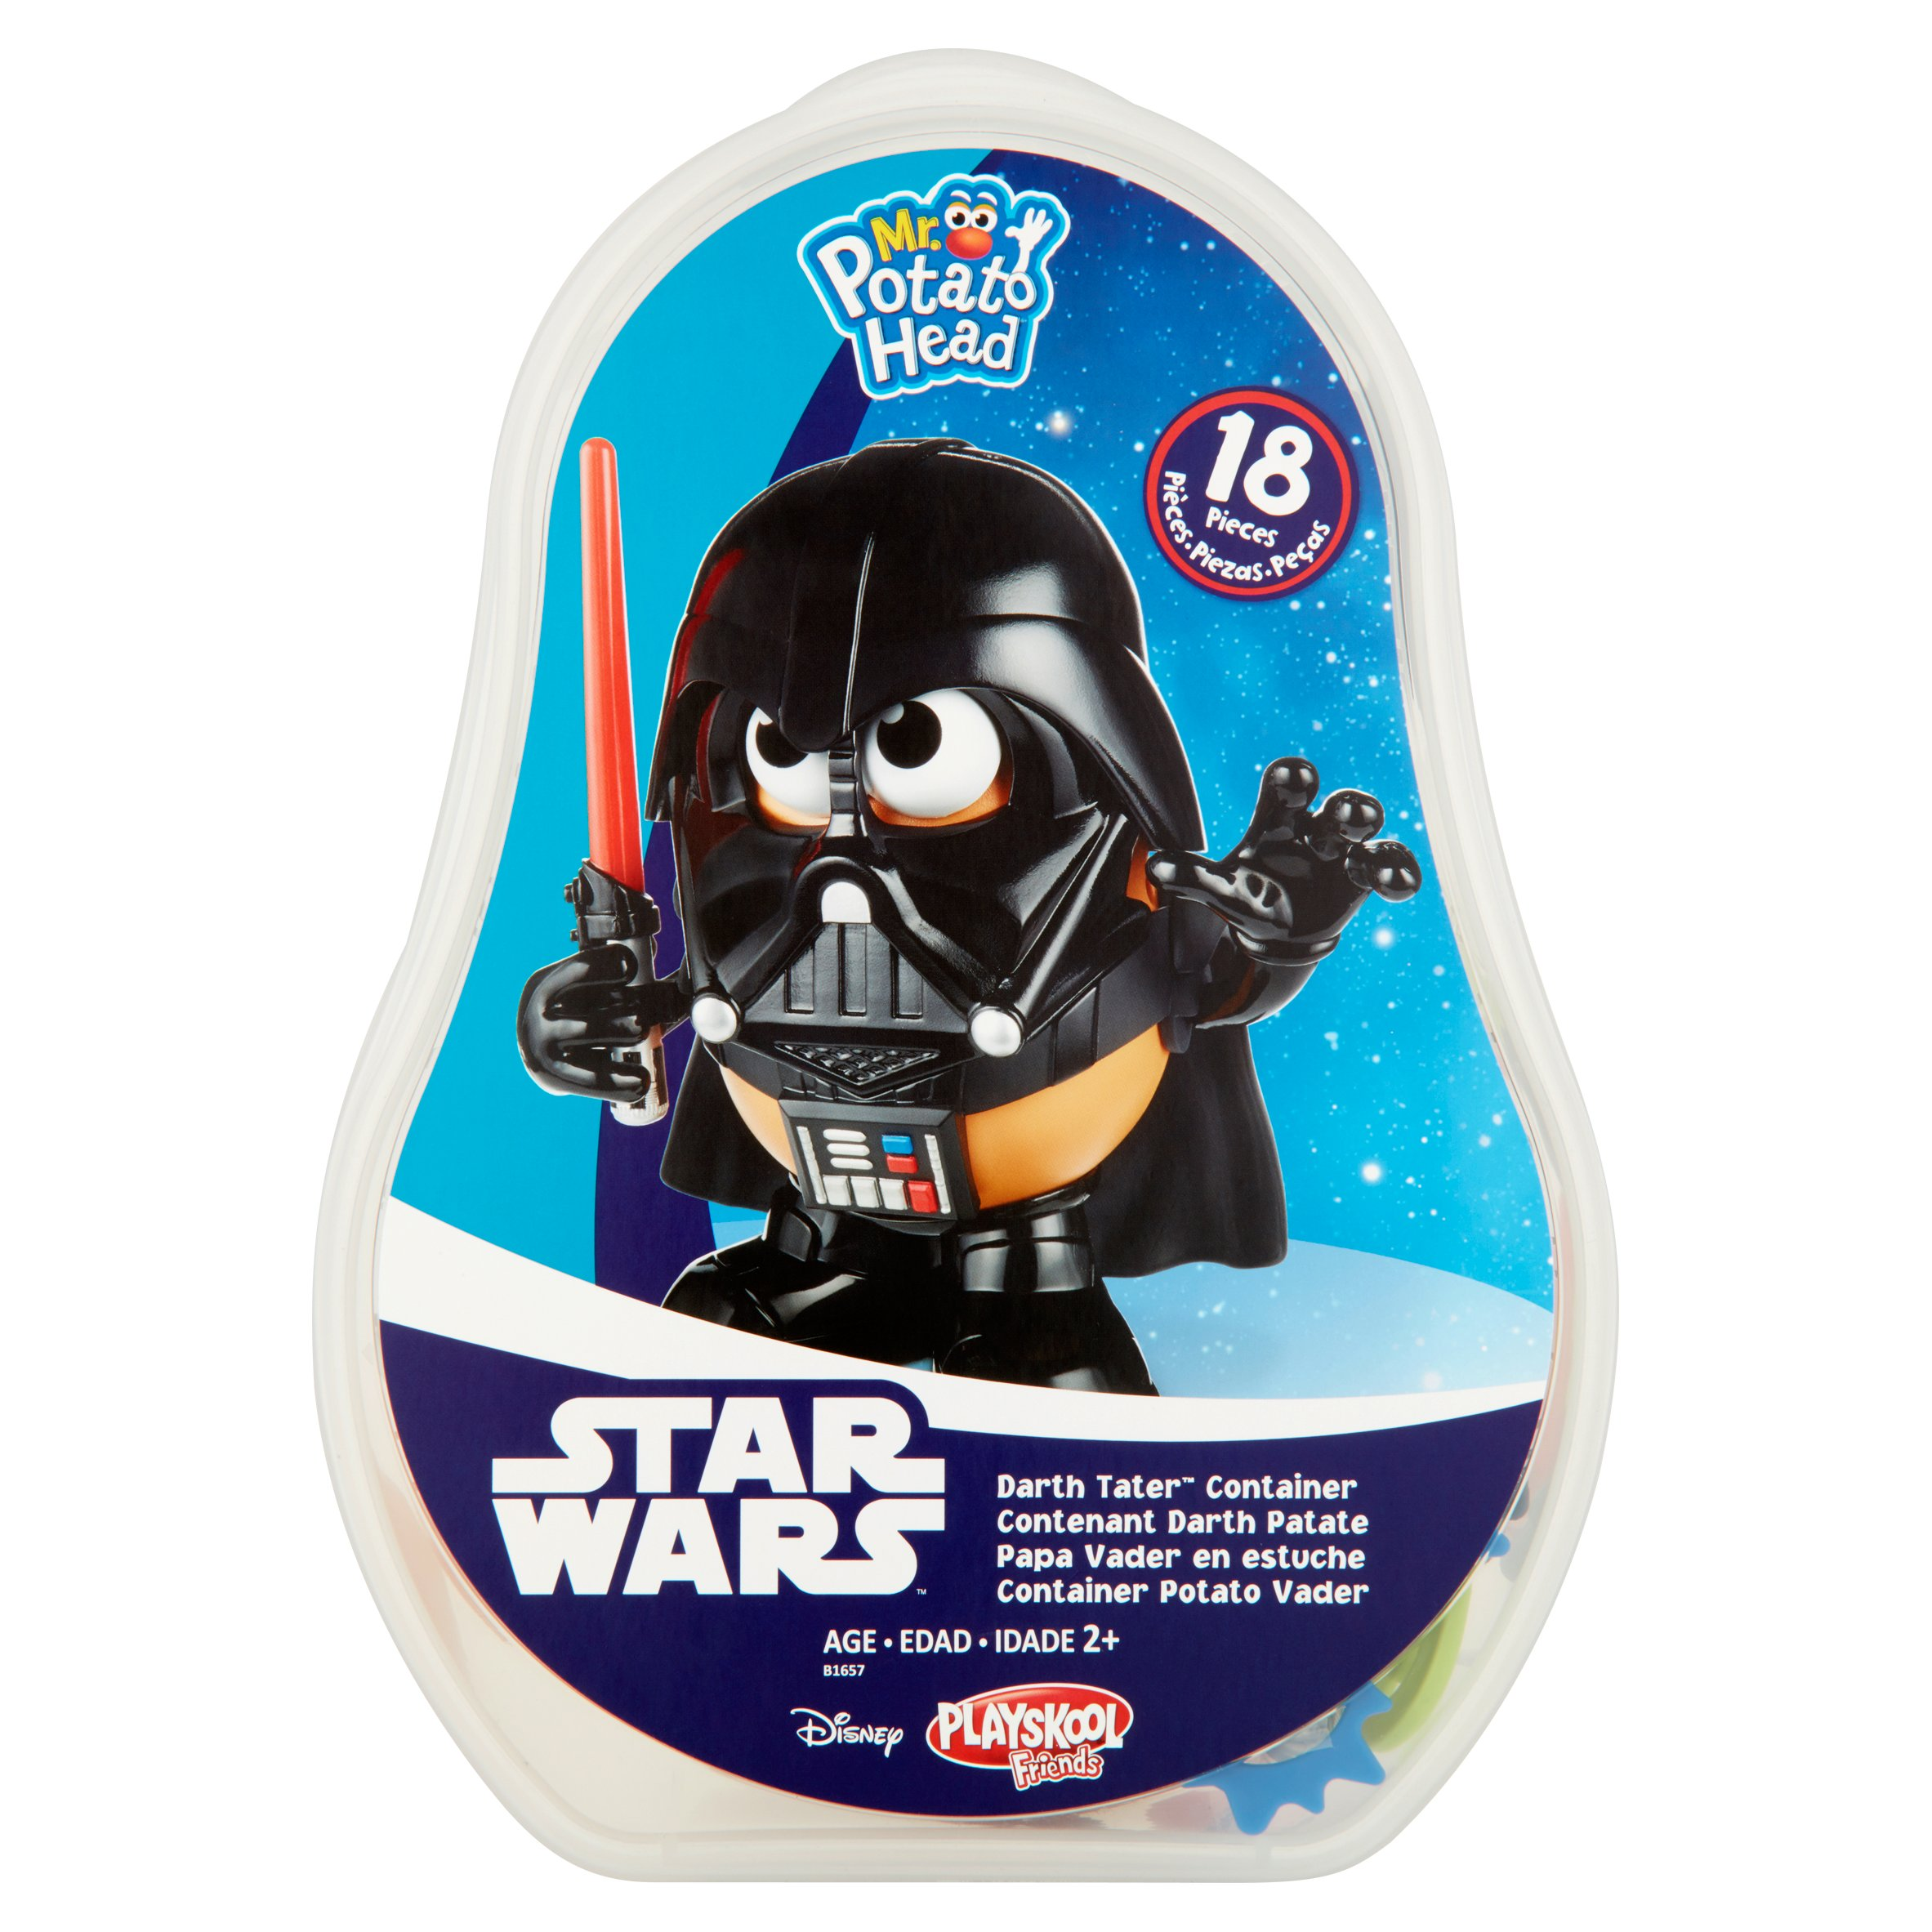 Disney Playskool Friends Star Wars Mr. Potato Head Darth Tater Container Age 2+, 18 count by Hasbro